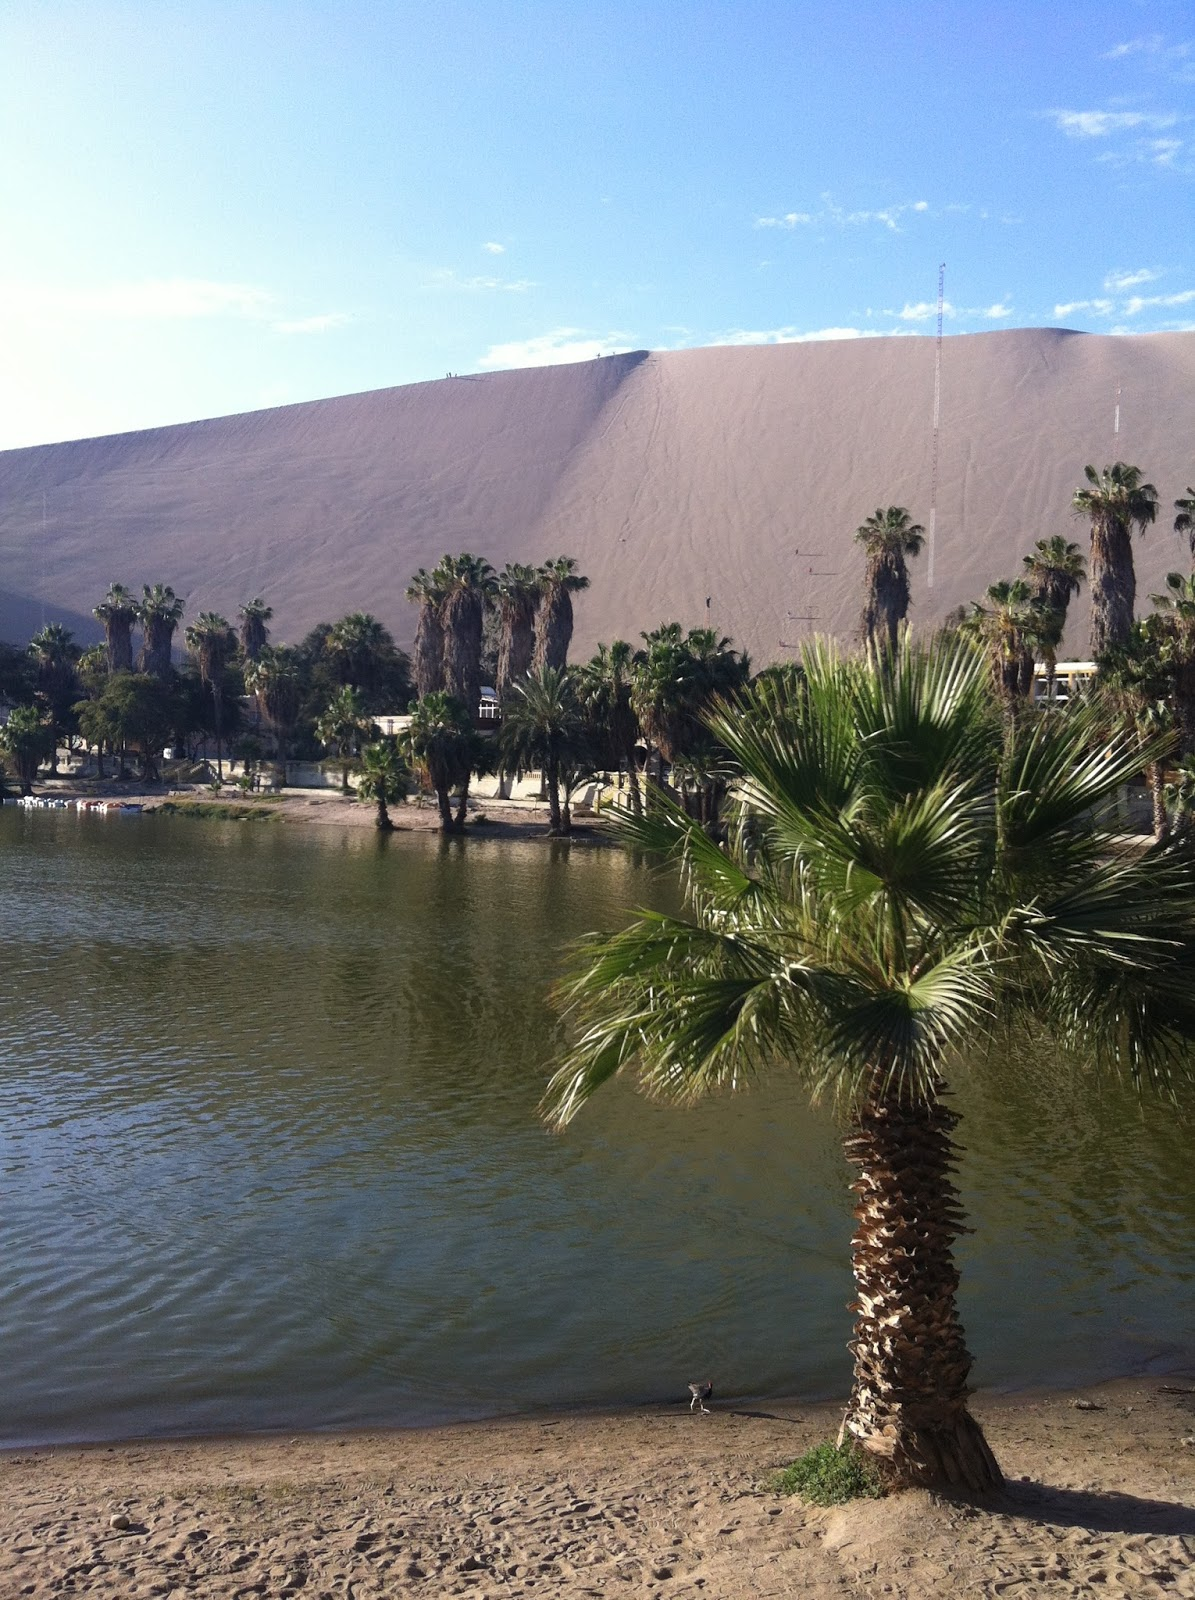 Oasis in Huacachina